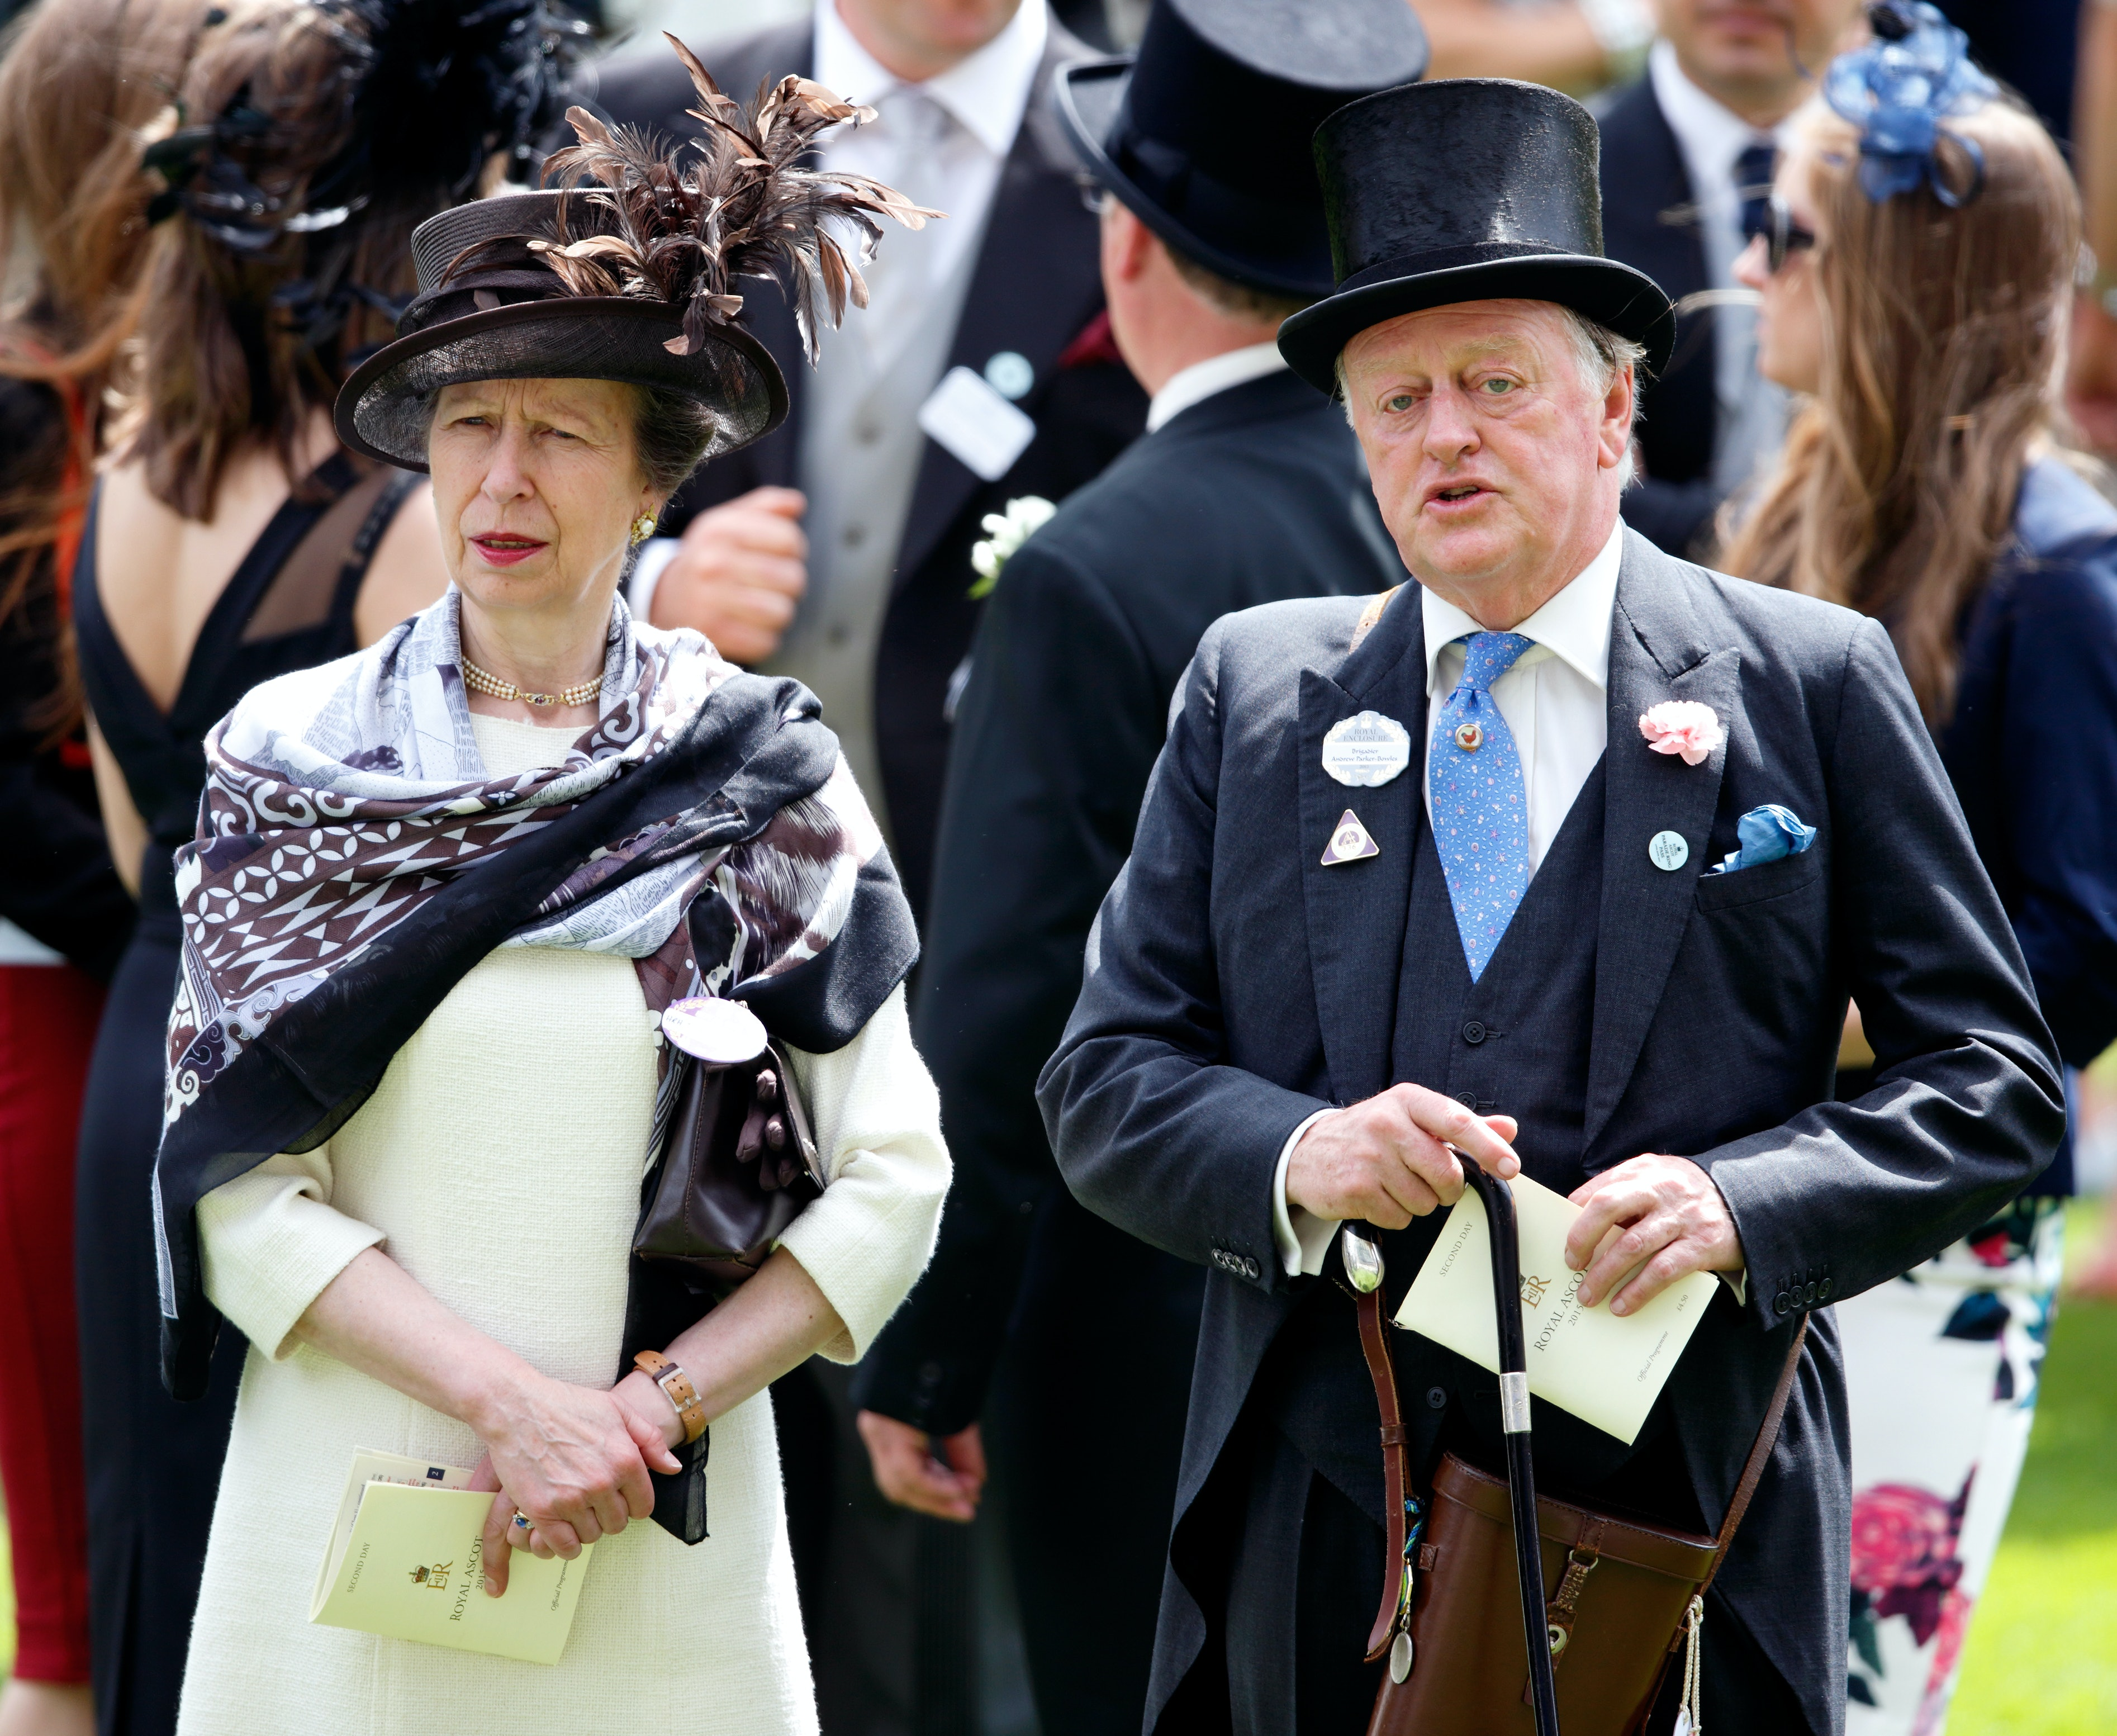 Andrew Parker Bowles & Princess Anne's Relationship Was Part Of A ...